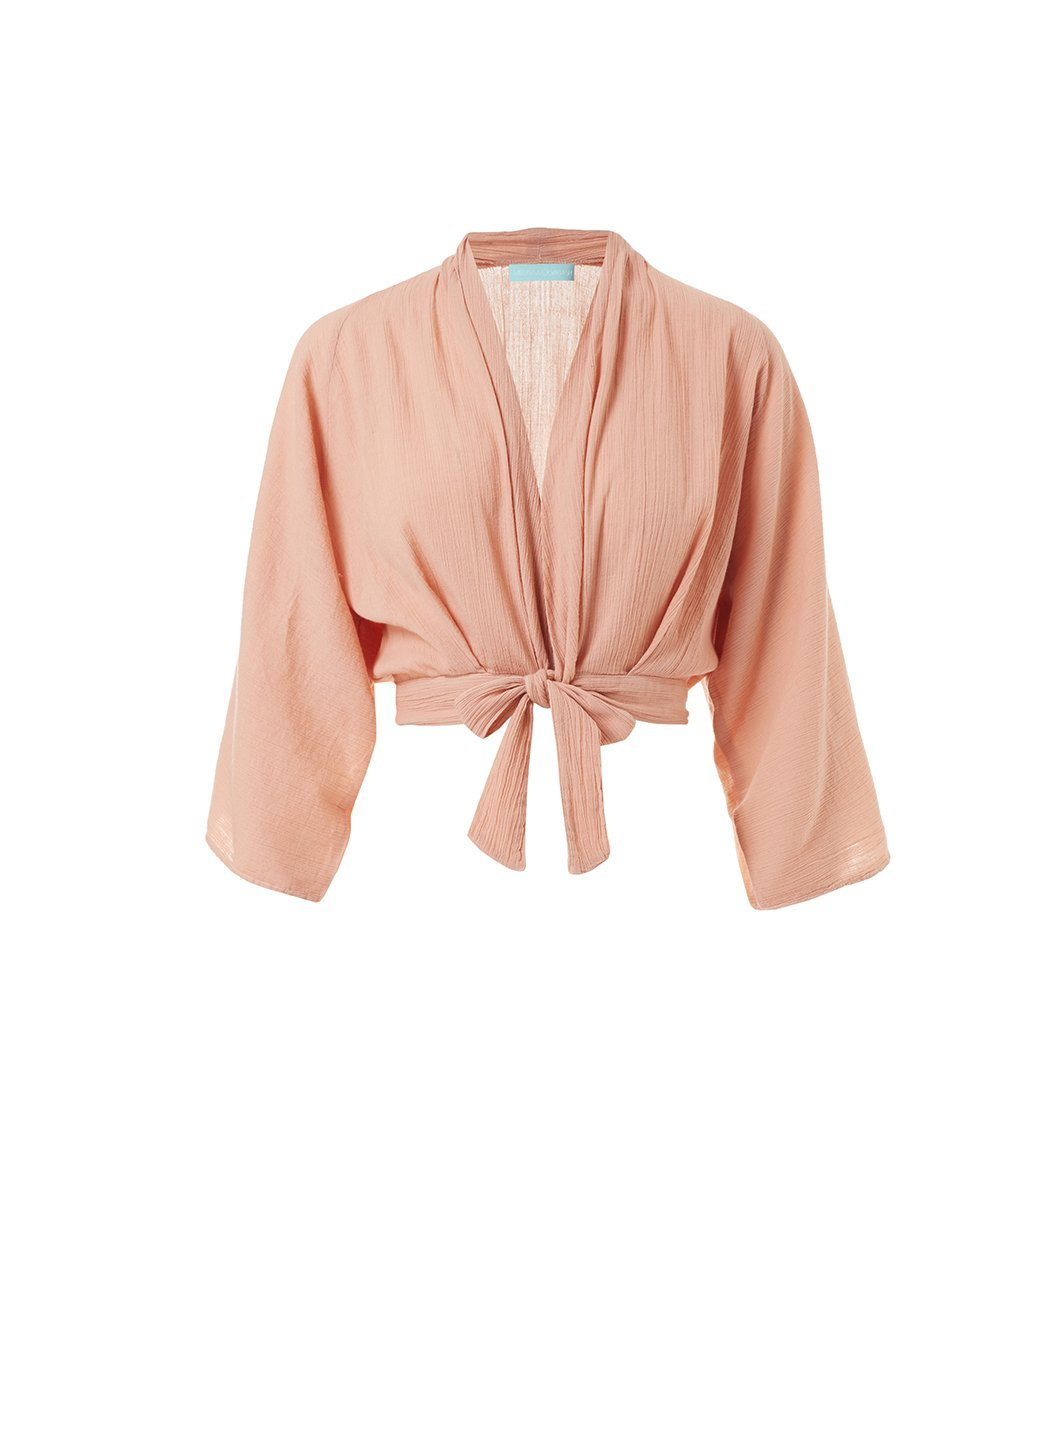 mila tan tiefront cropped blouse 2019